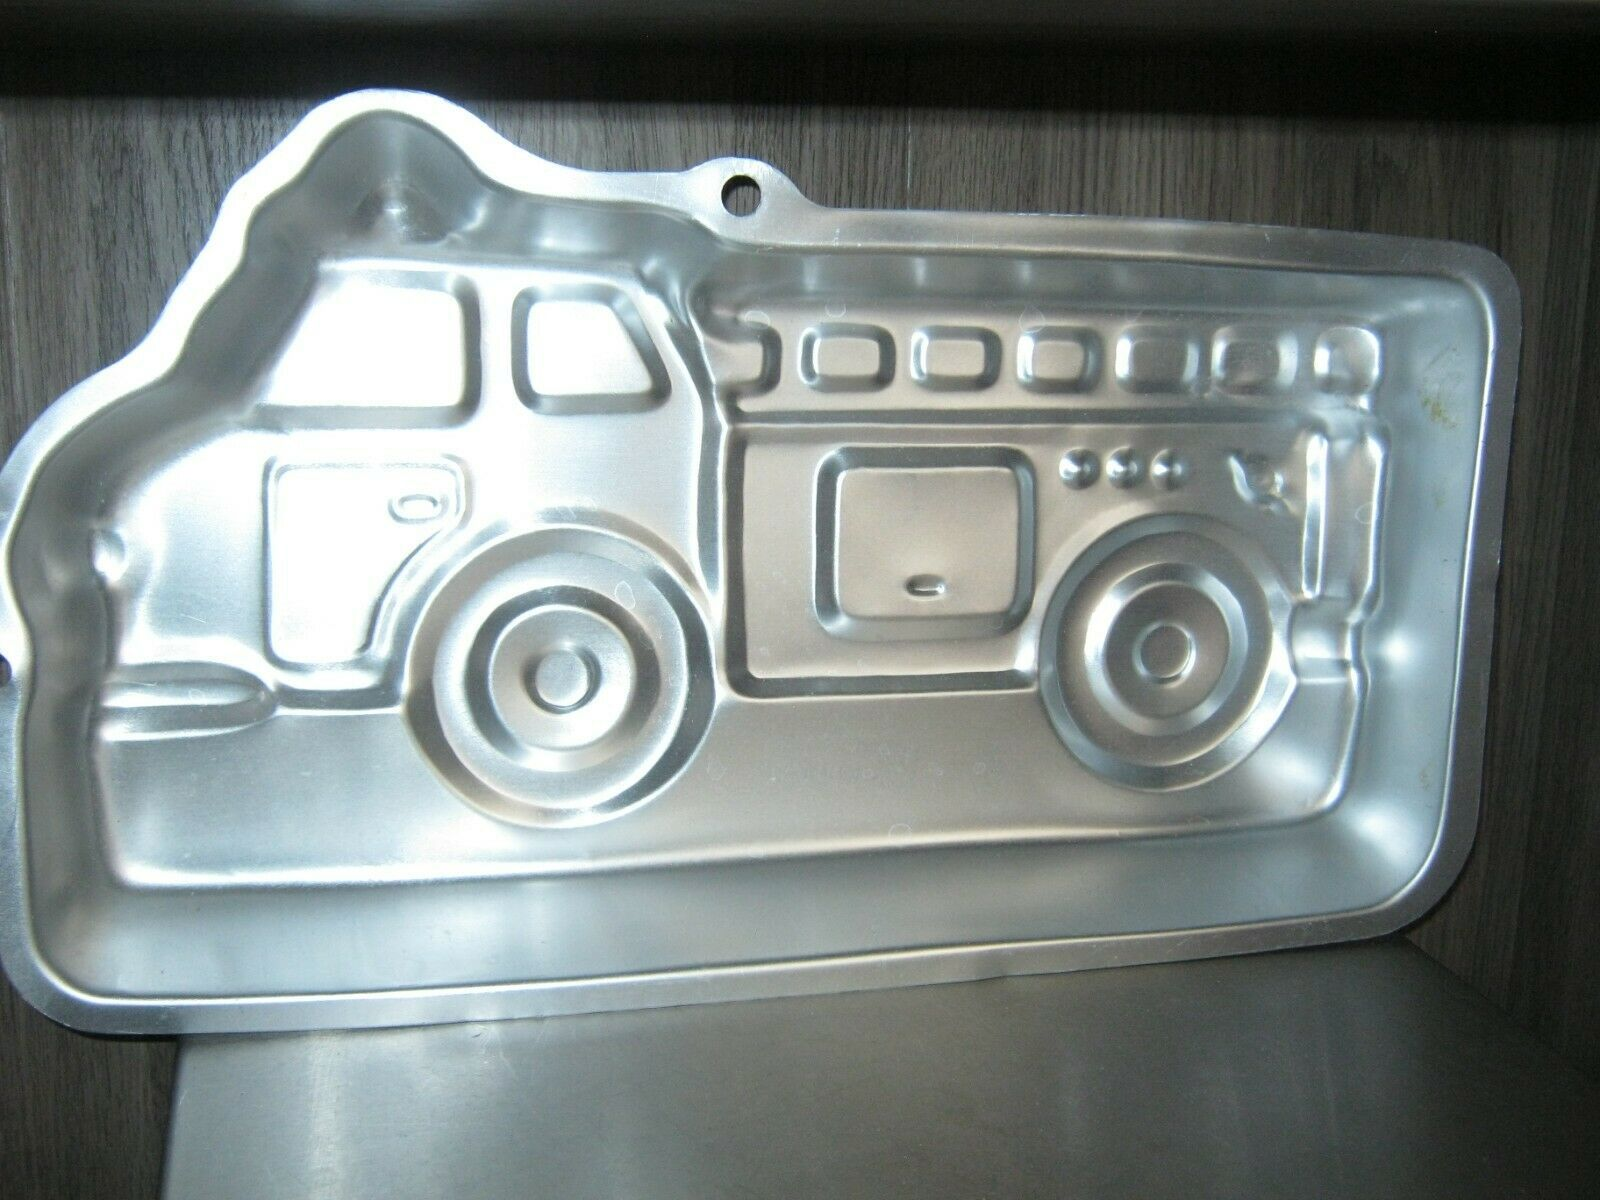 Primary image for Wilton Fire Truck Cake Pan (2105-2061, 2002)